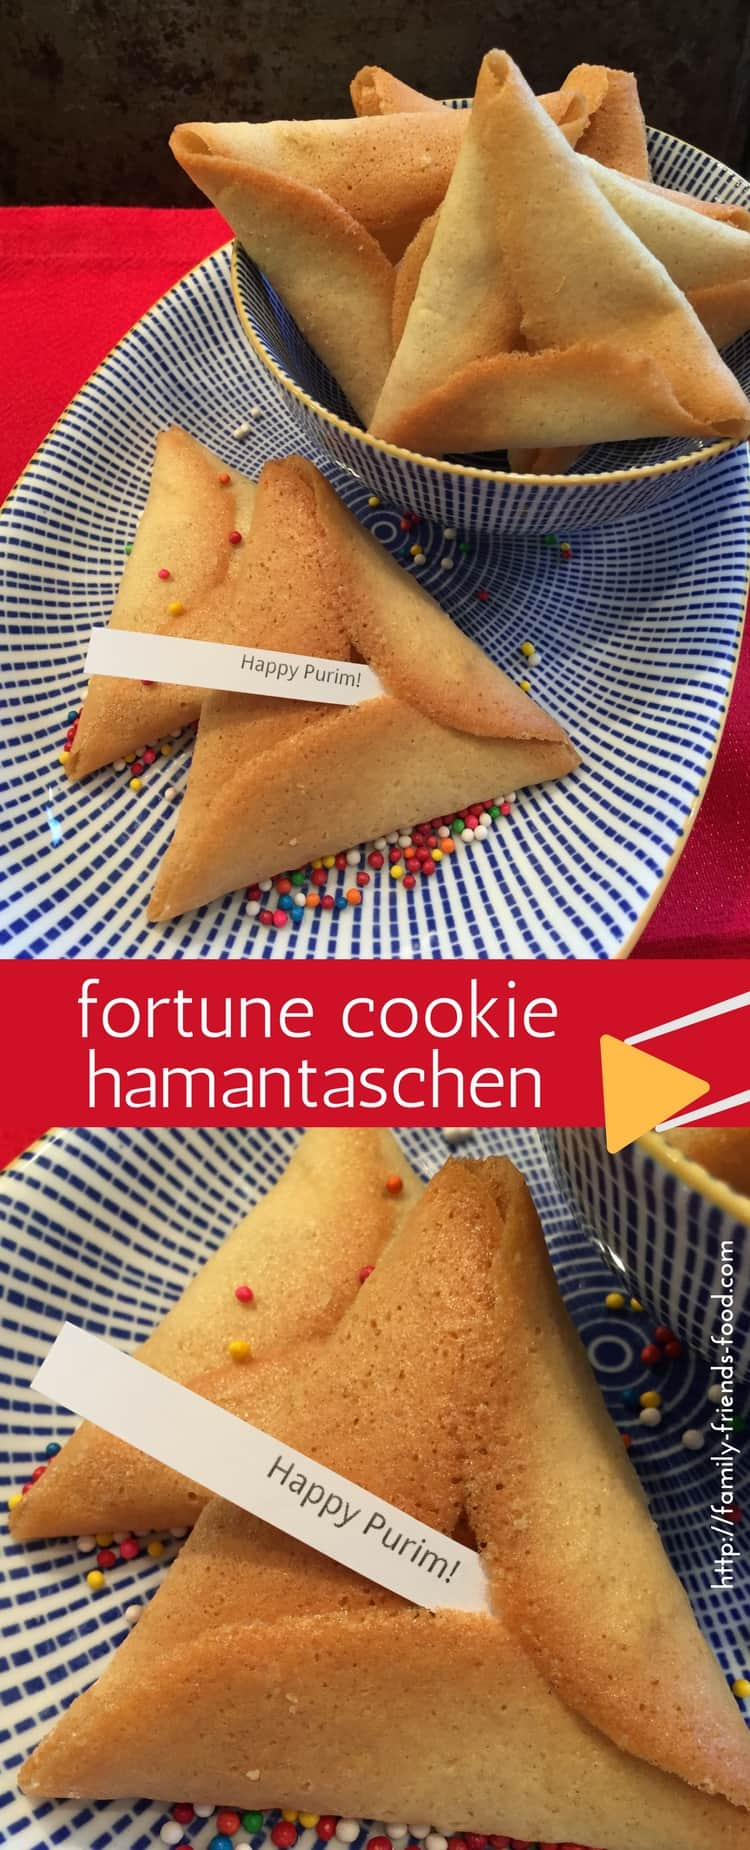 Crisp, sweet and delicious, these easy-to-make vanilla flavoured fortune cookie hamantaschen contain Purim greetings and fun messages. Happy Purim!